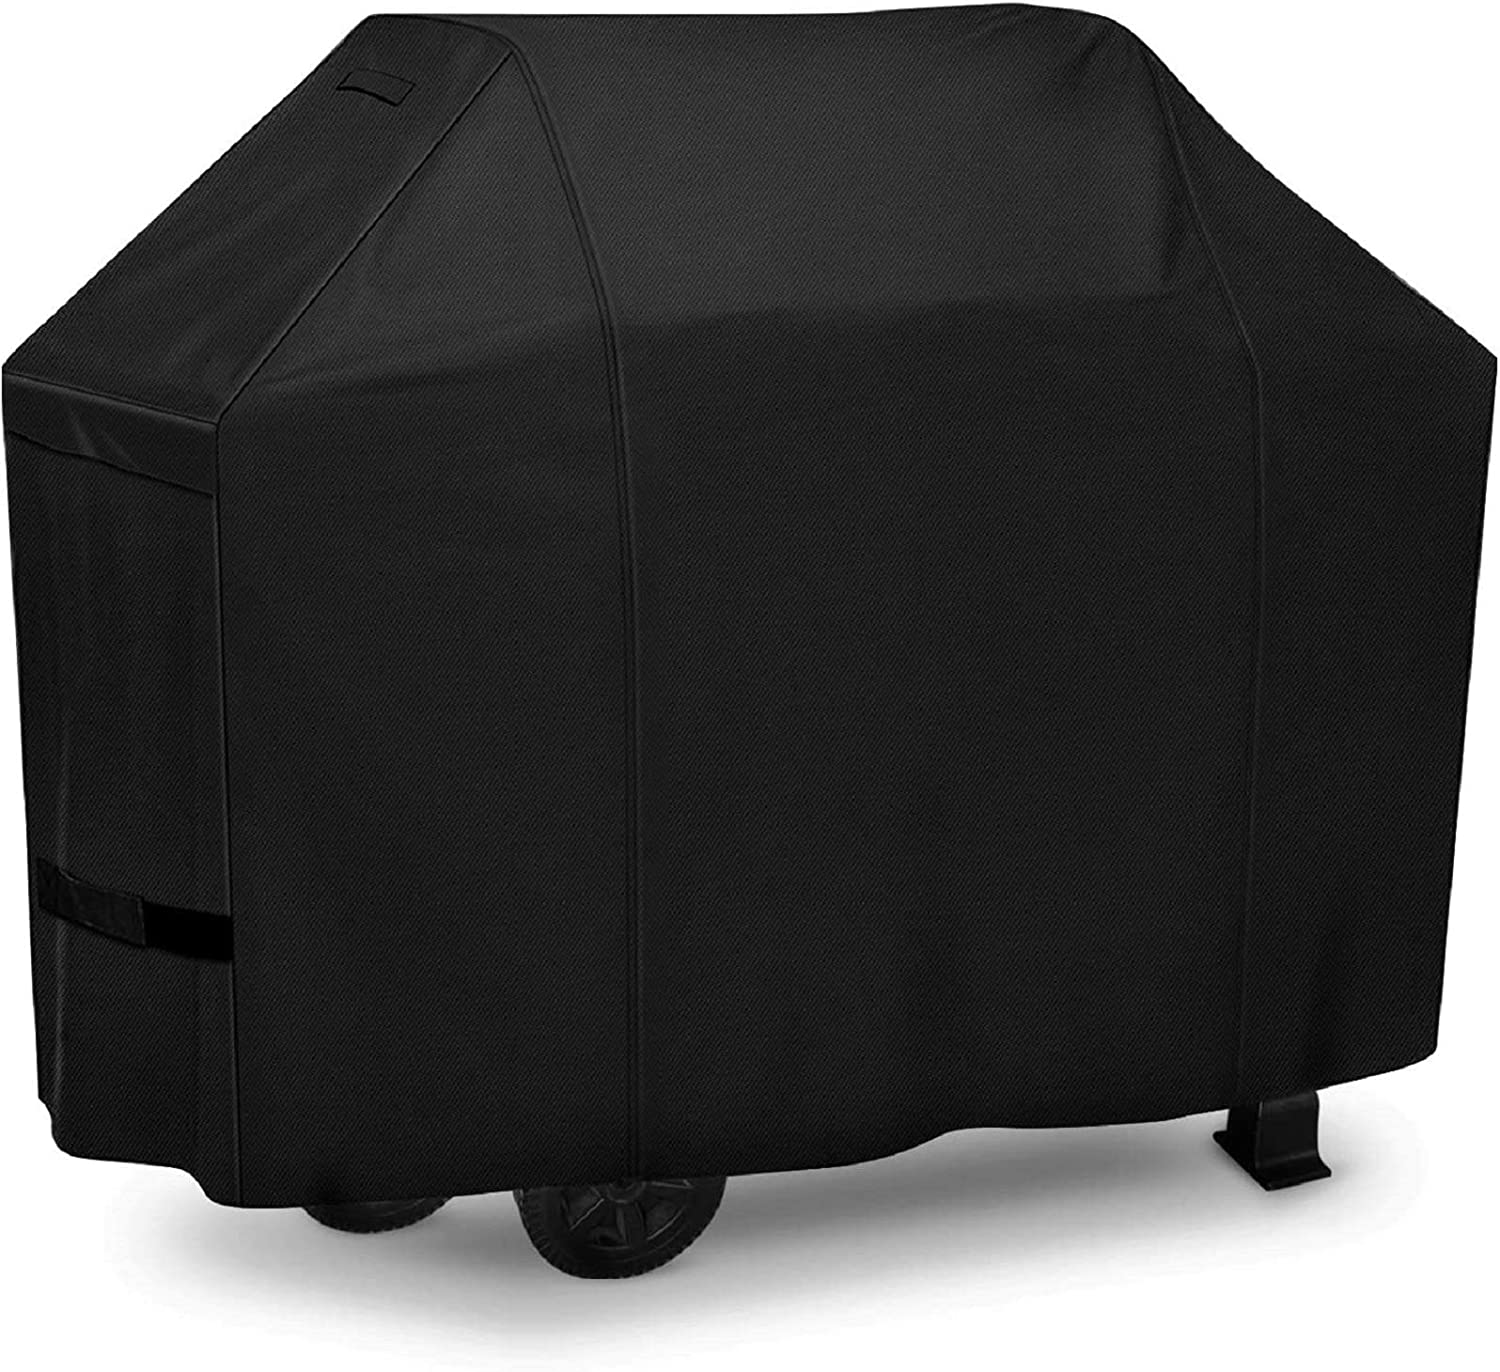 iCOVER Grill Cover 50in, 600D Heavy Duty with Mesh Air Vent, Waterproof Barbecue Gas Smoker Cover, UV and Fade Resistant, Fit for Weber Char-Broil Nexgrill Brinkmann and More